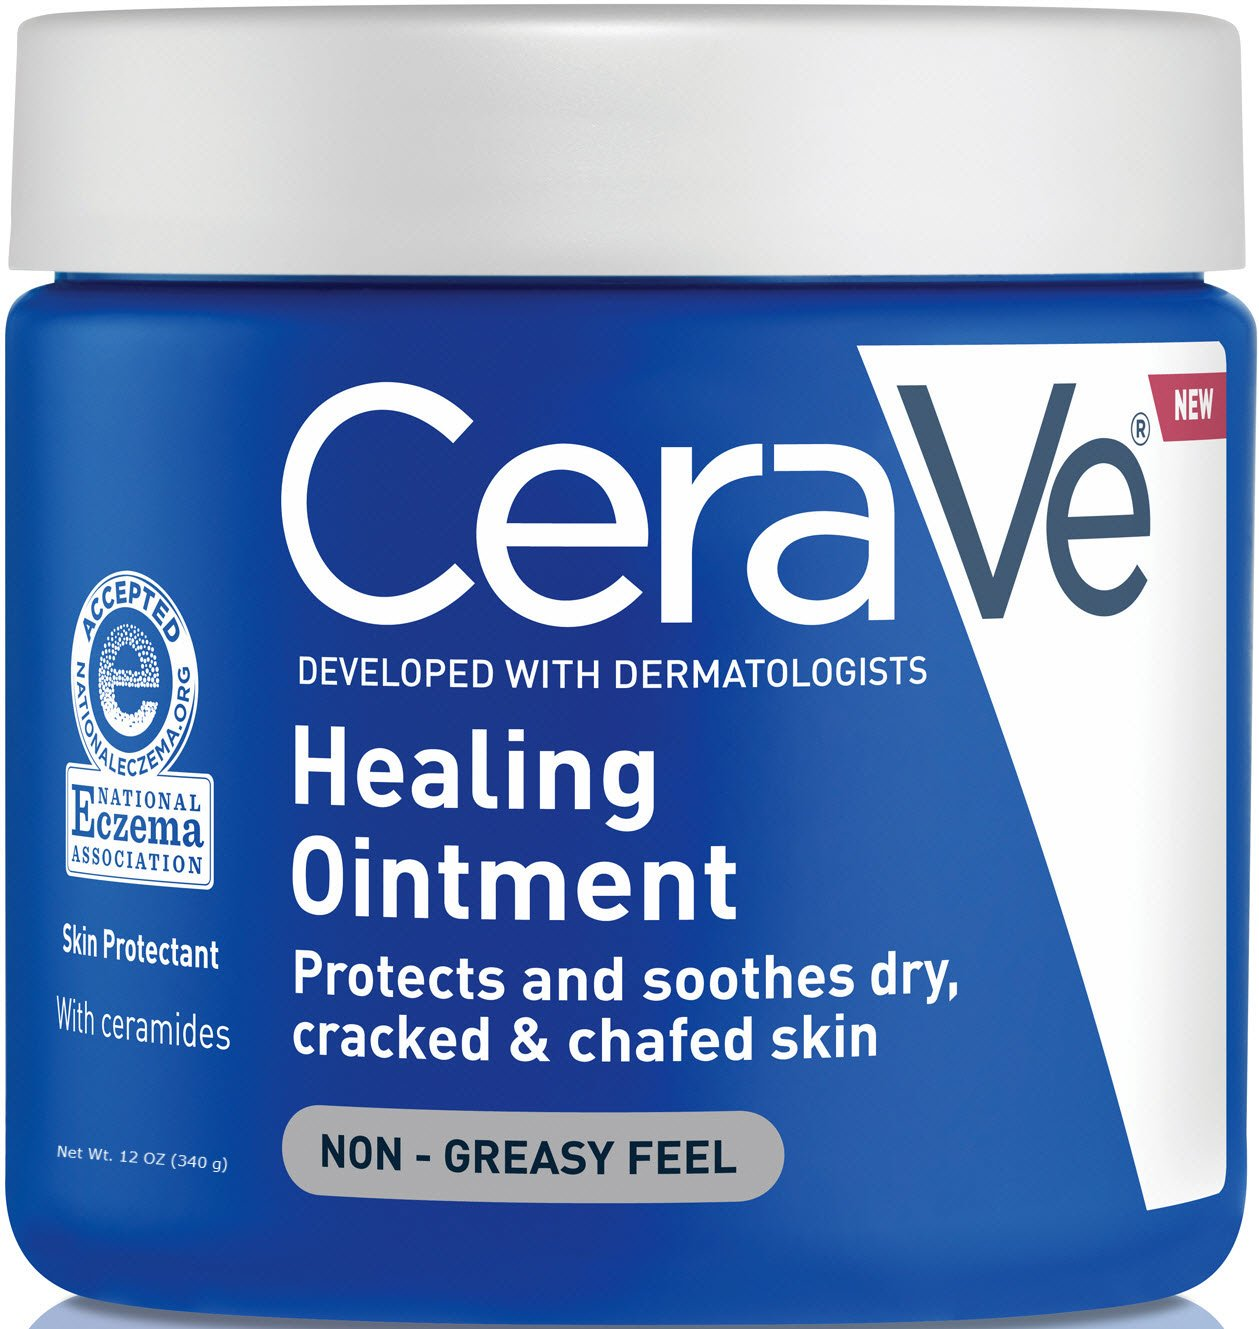 CeraVe Healing Ointment 12 oz withPetrolatum Ceramides for Protecting and Soothing Cracked, Chafed Skin